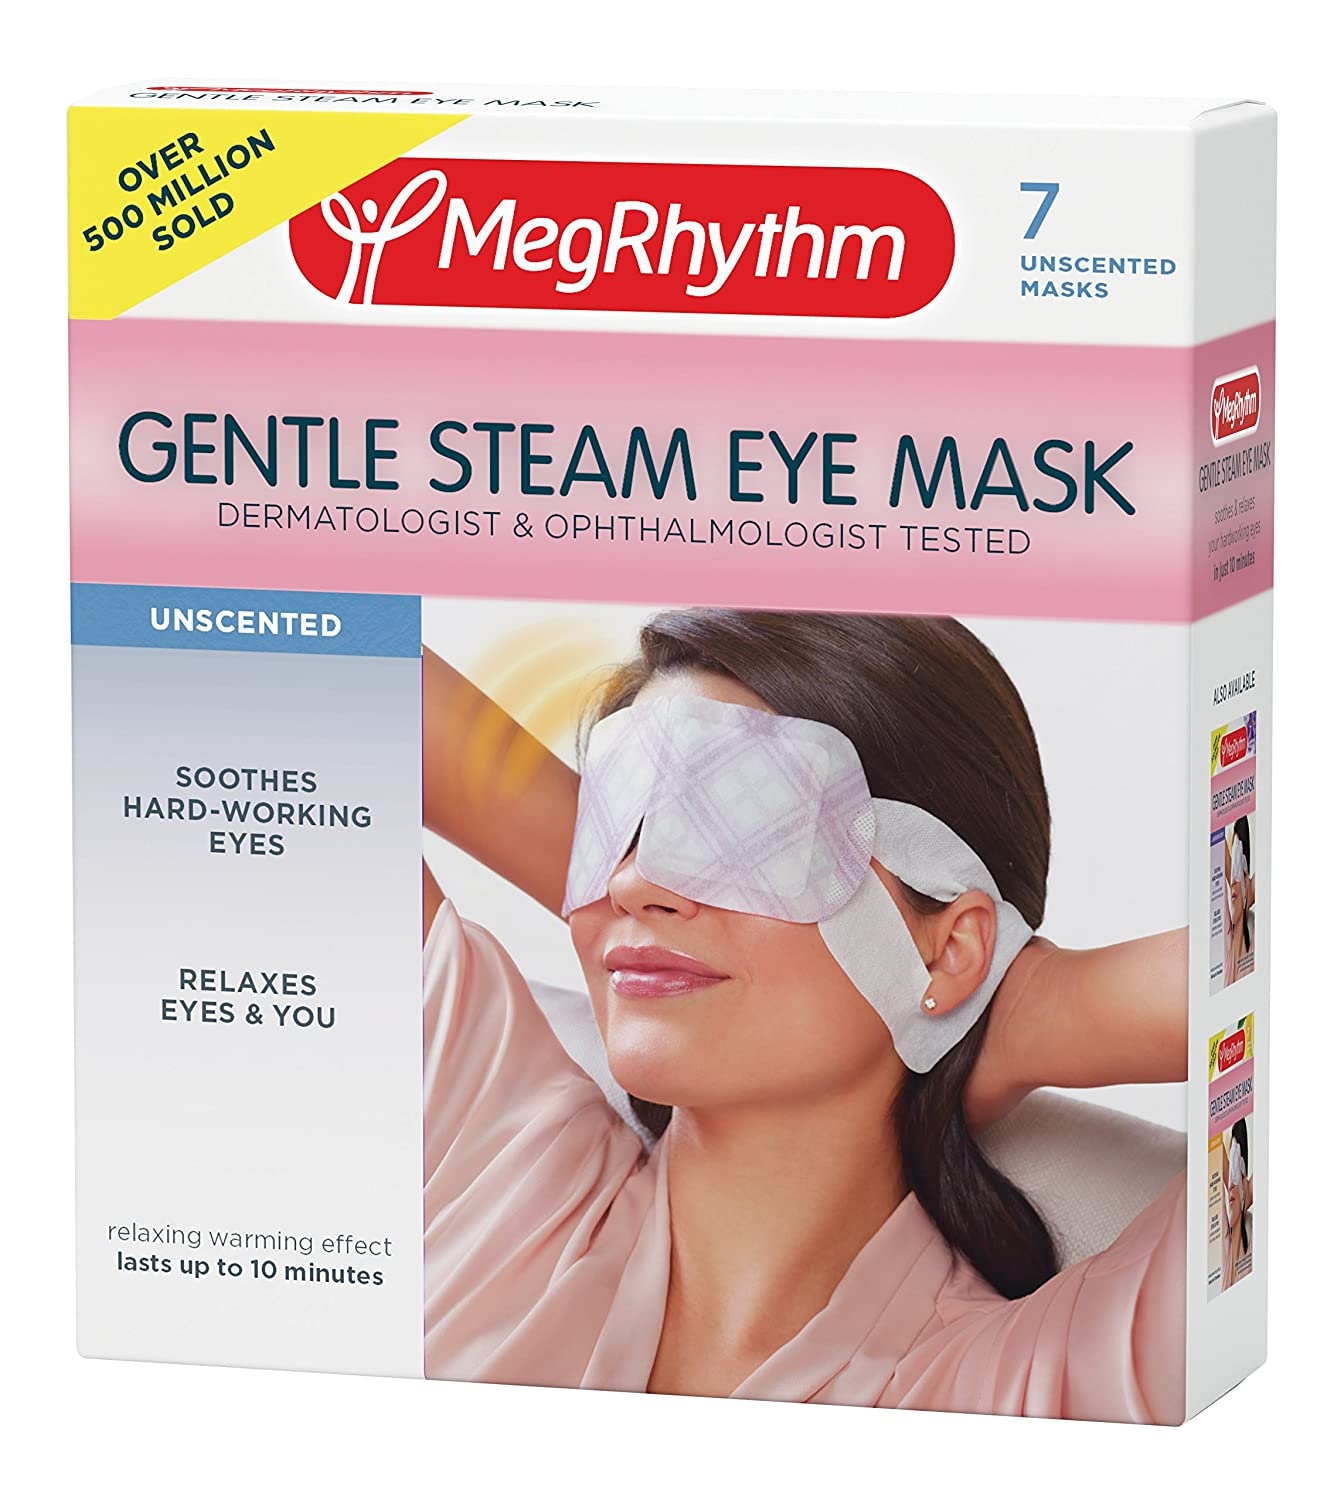 MegRhythm Gentle Steam Eye Mask, Unscented, 7 Count KAO Brands